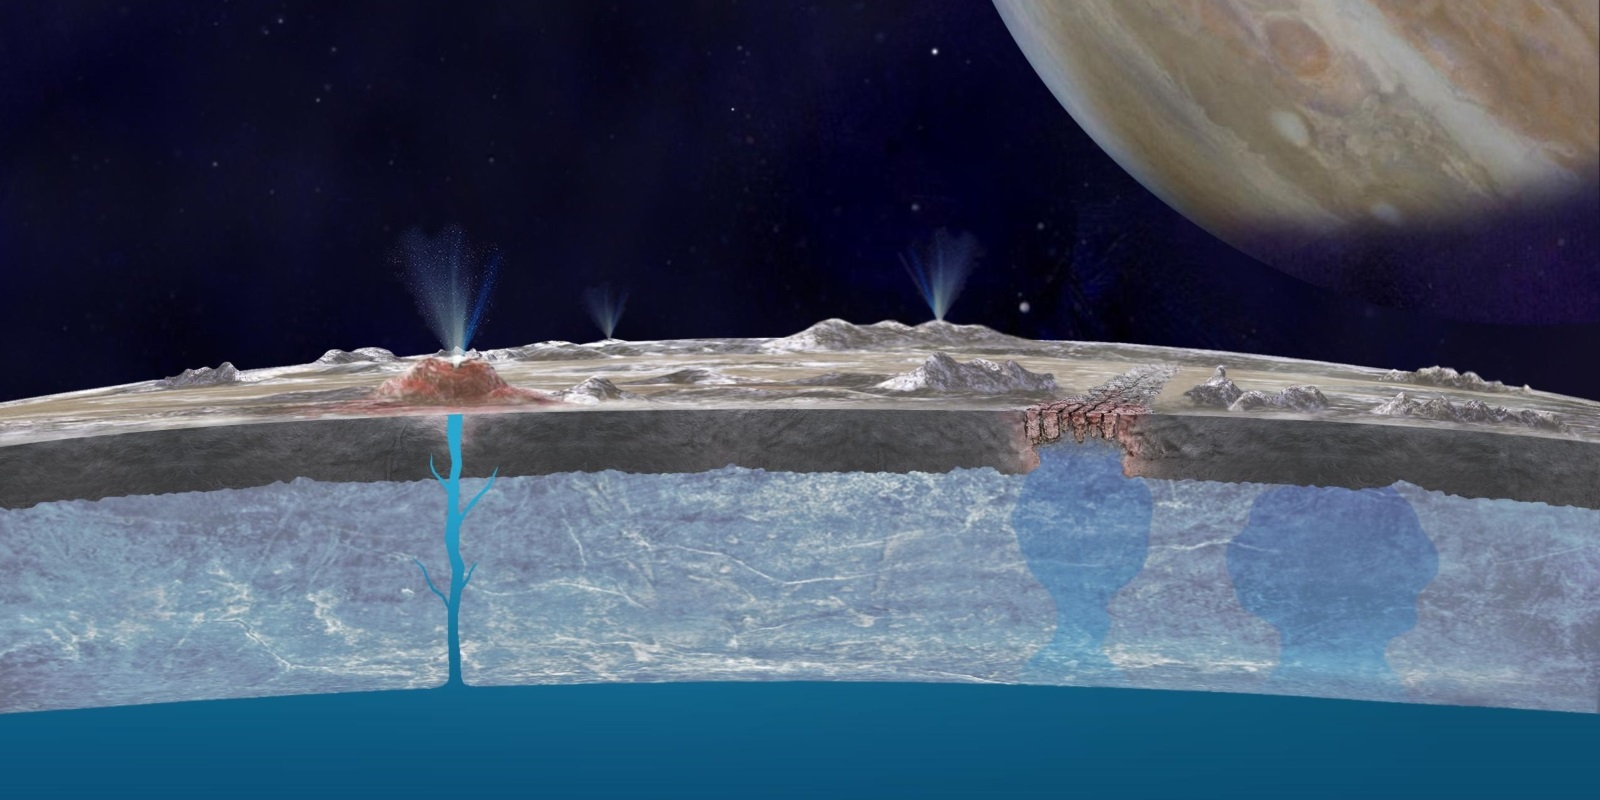 A cut-out illustration of an underground ocean on Jupiter's moon Europa and feathers erupting from its surface. Image Credit: NASA / JPL-Caltech